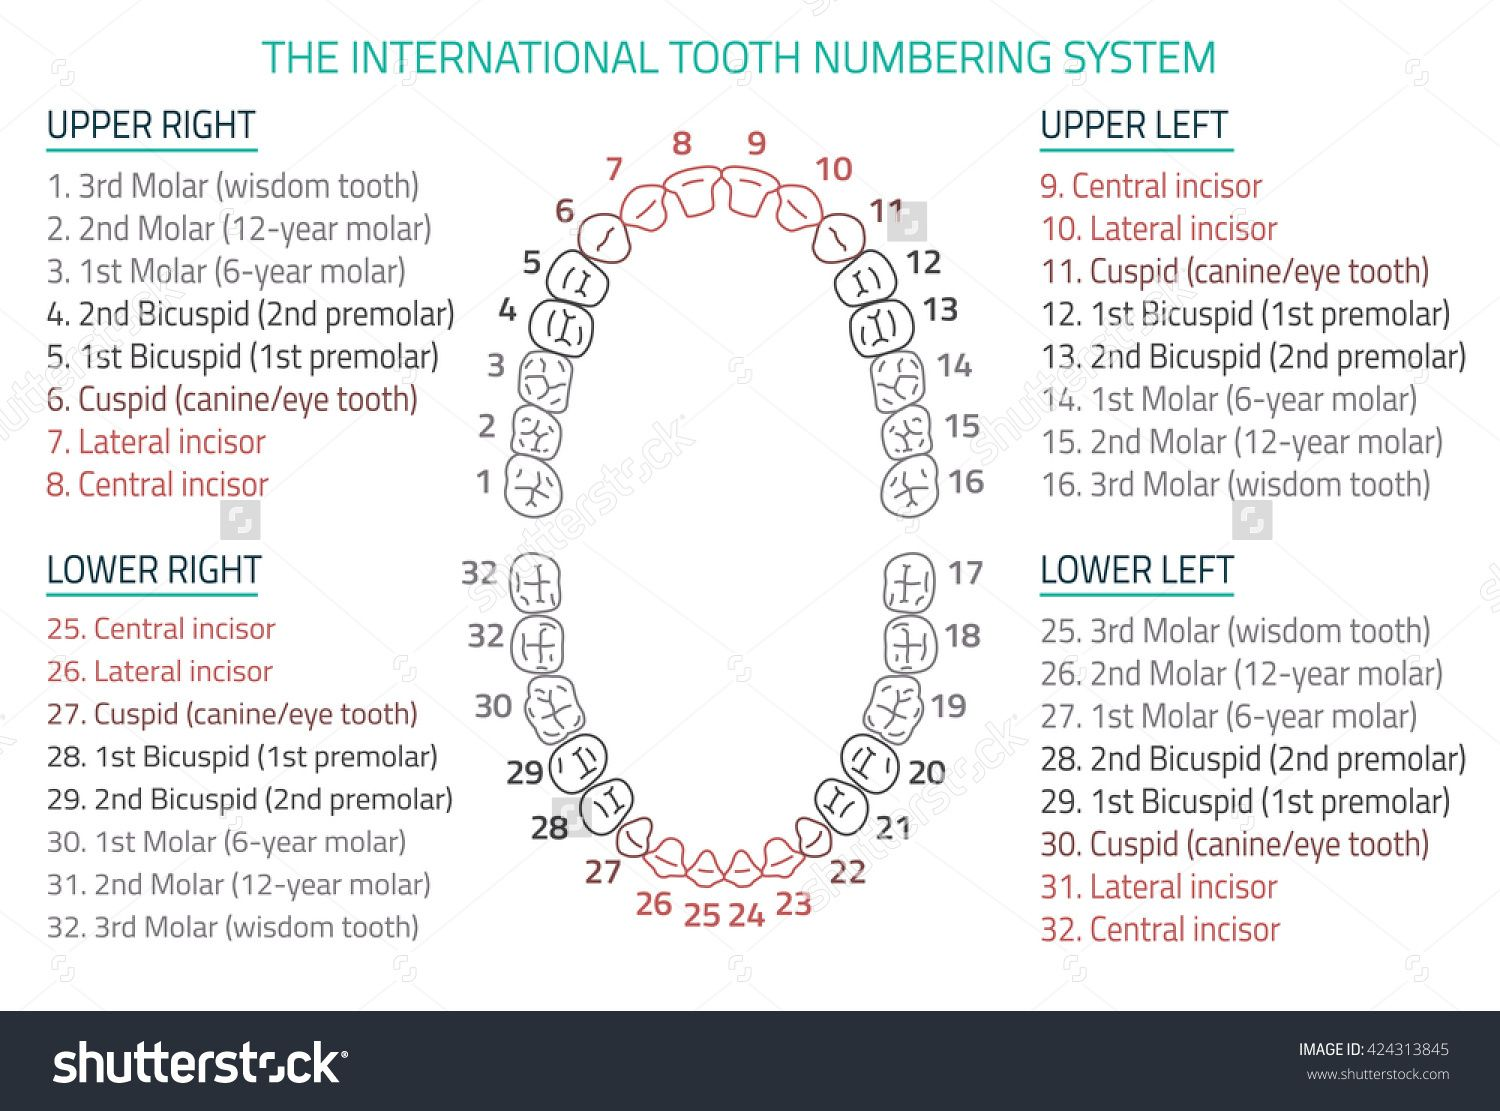 tooth layout diagram different diagrams in software engineering adult international numbering chart vector